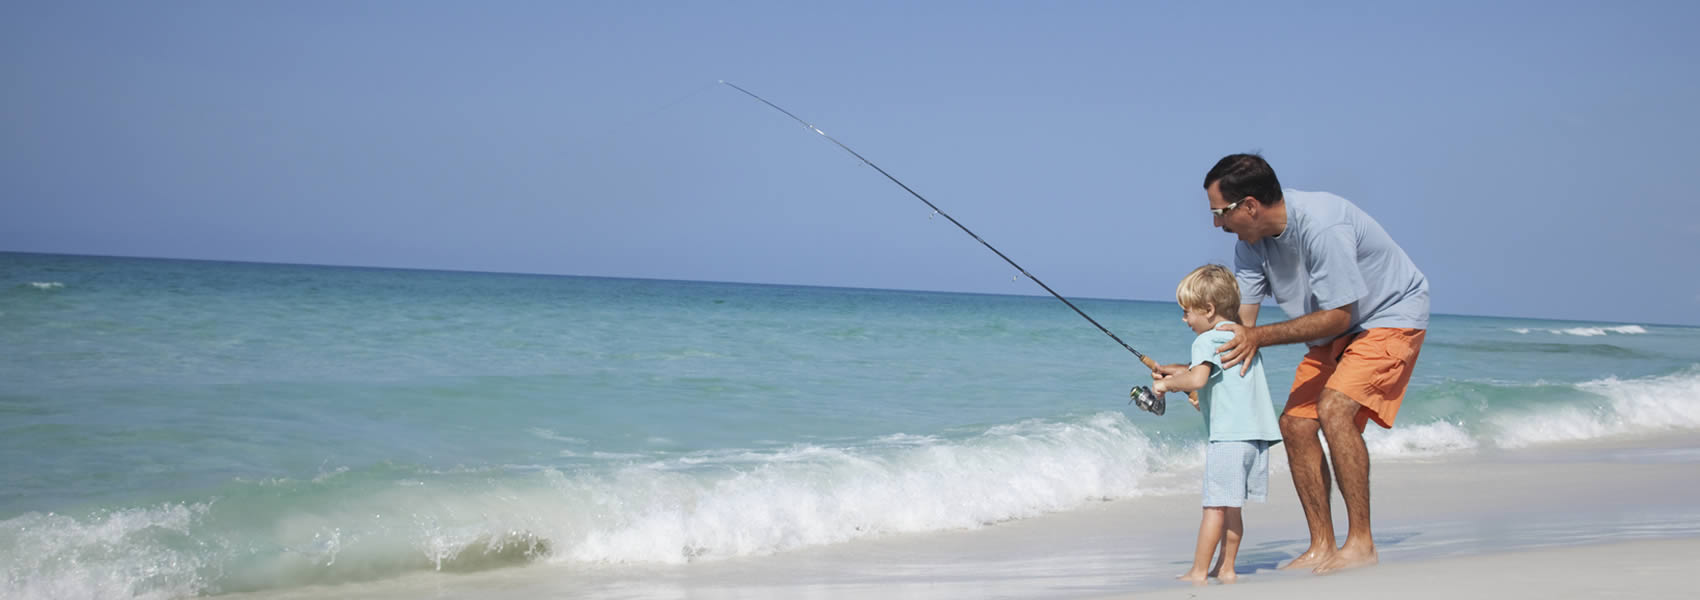 Father & son fishing on the beach